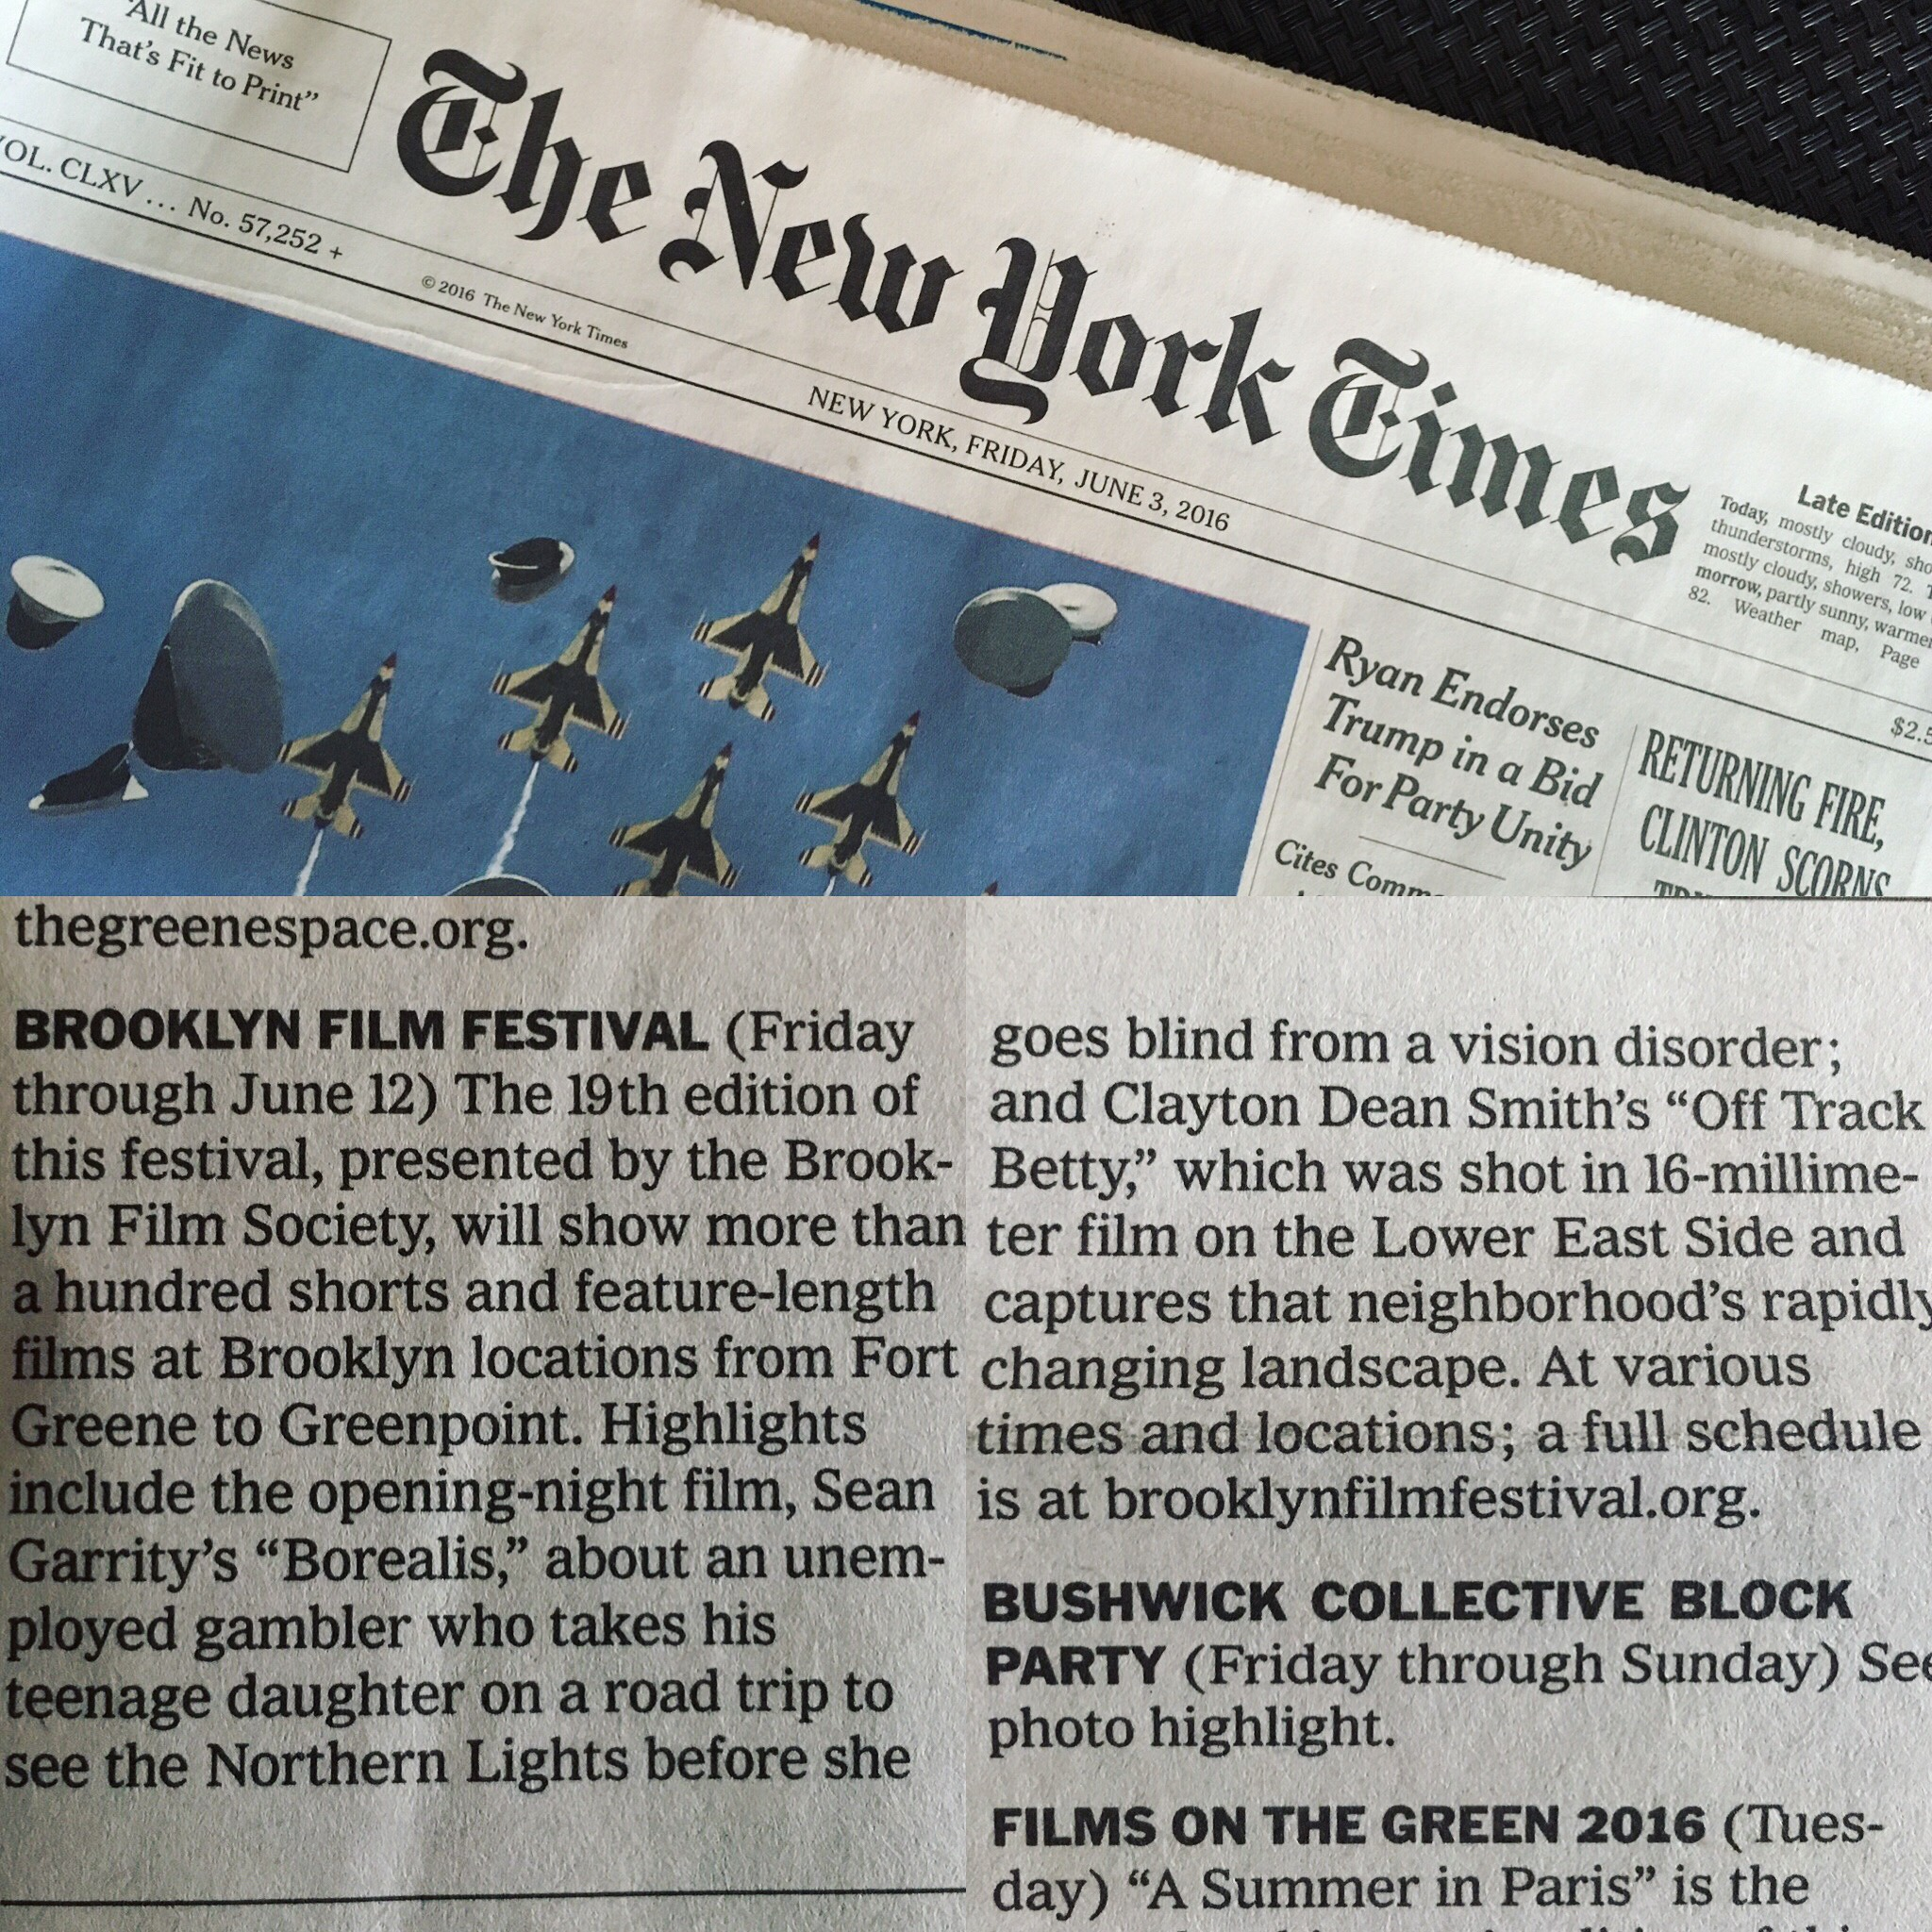 Off Track Betty in the New York Times